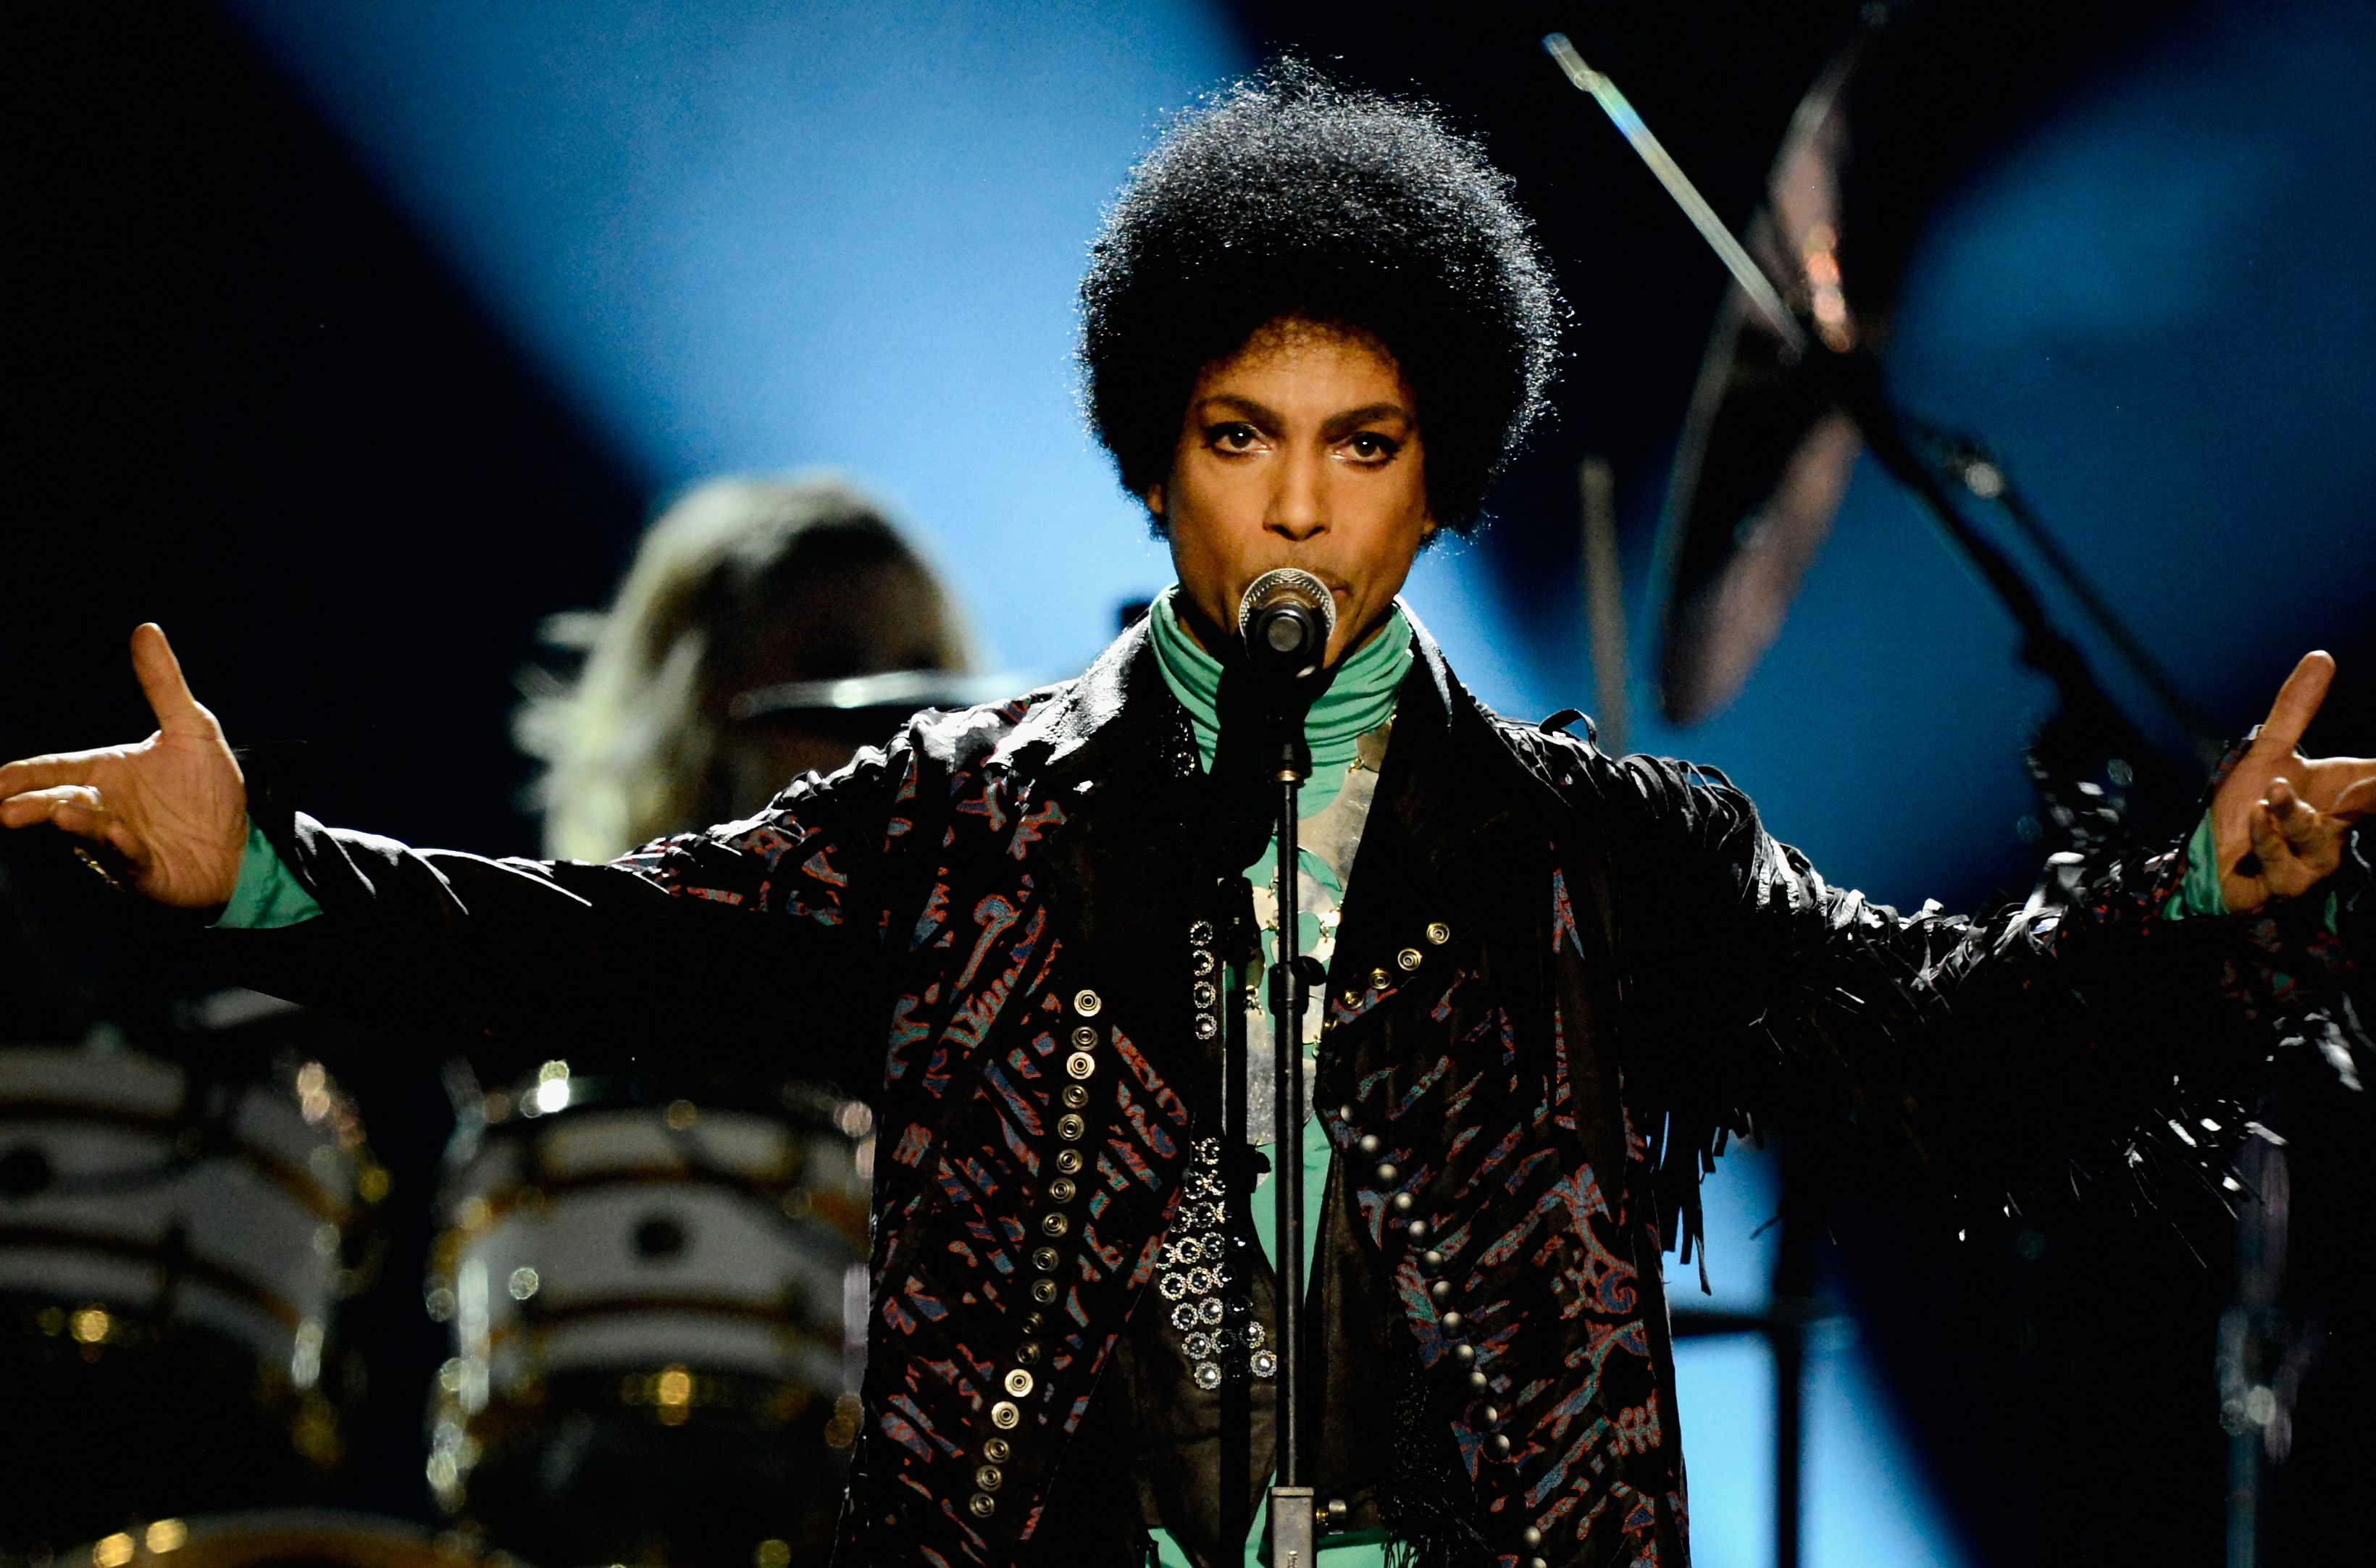 LAS VEGAS, NV - MAY 19: Musician Prince performs onstage during the 2013 Billboard Music Awards at the MGM Grand Garden Arena on May 19, 2013 in Las Vegas, Nevada. (Photo by Kevin Mazur/WireImage)